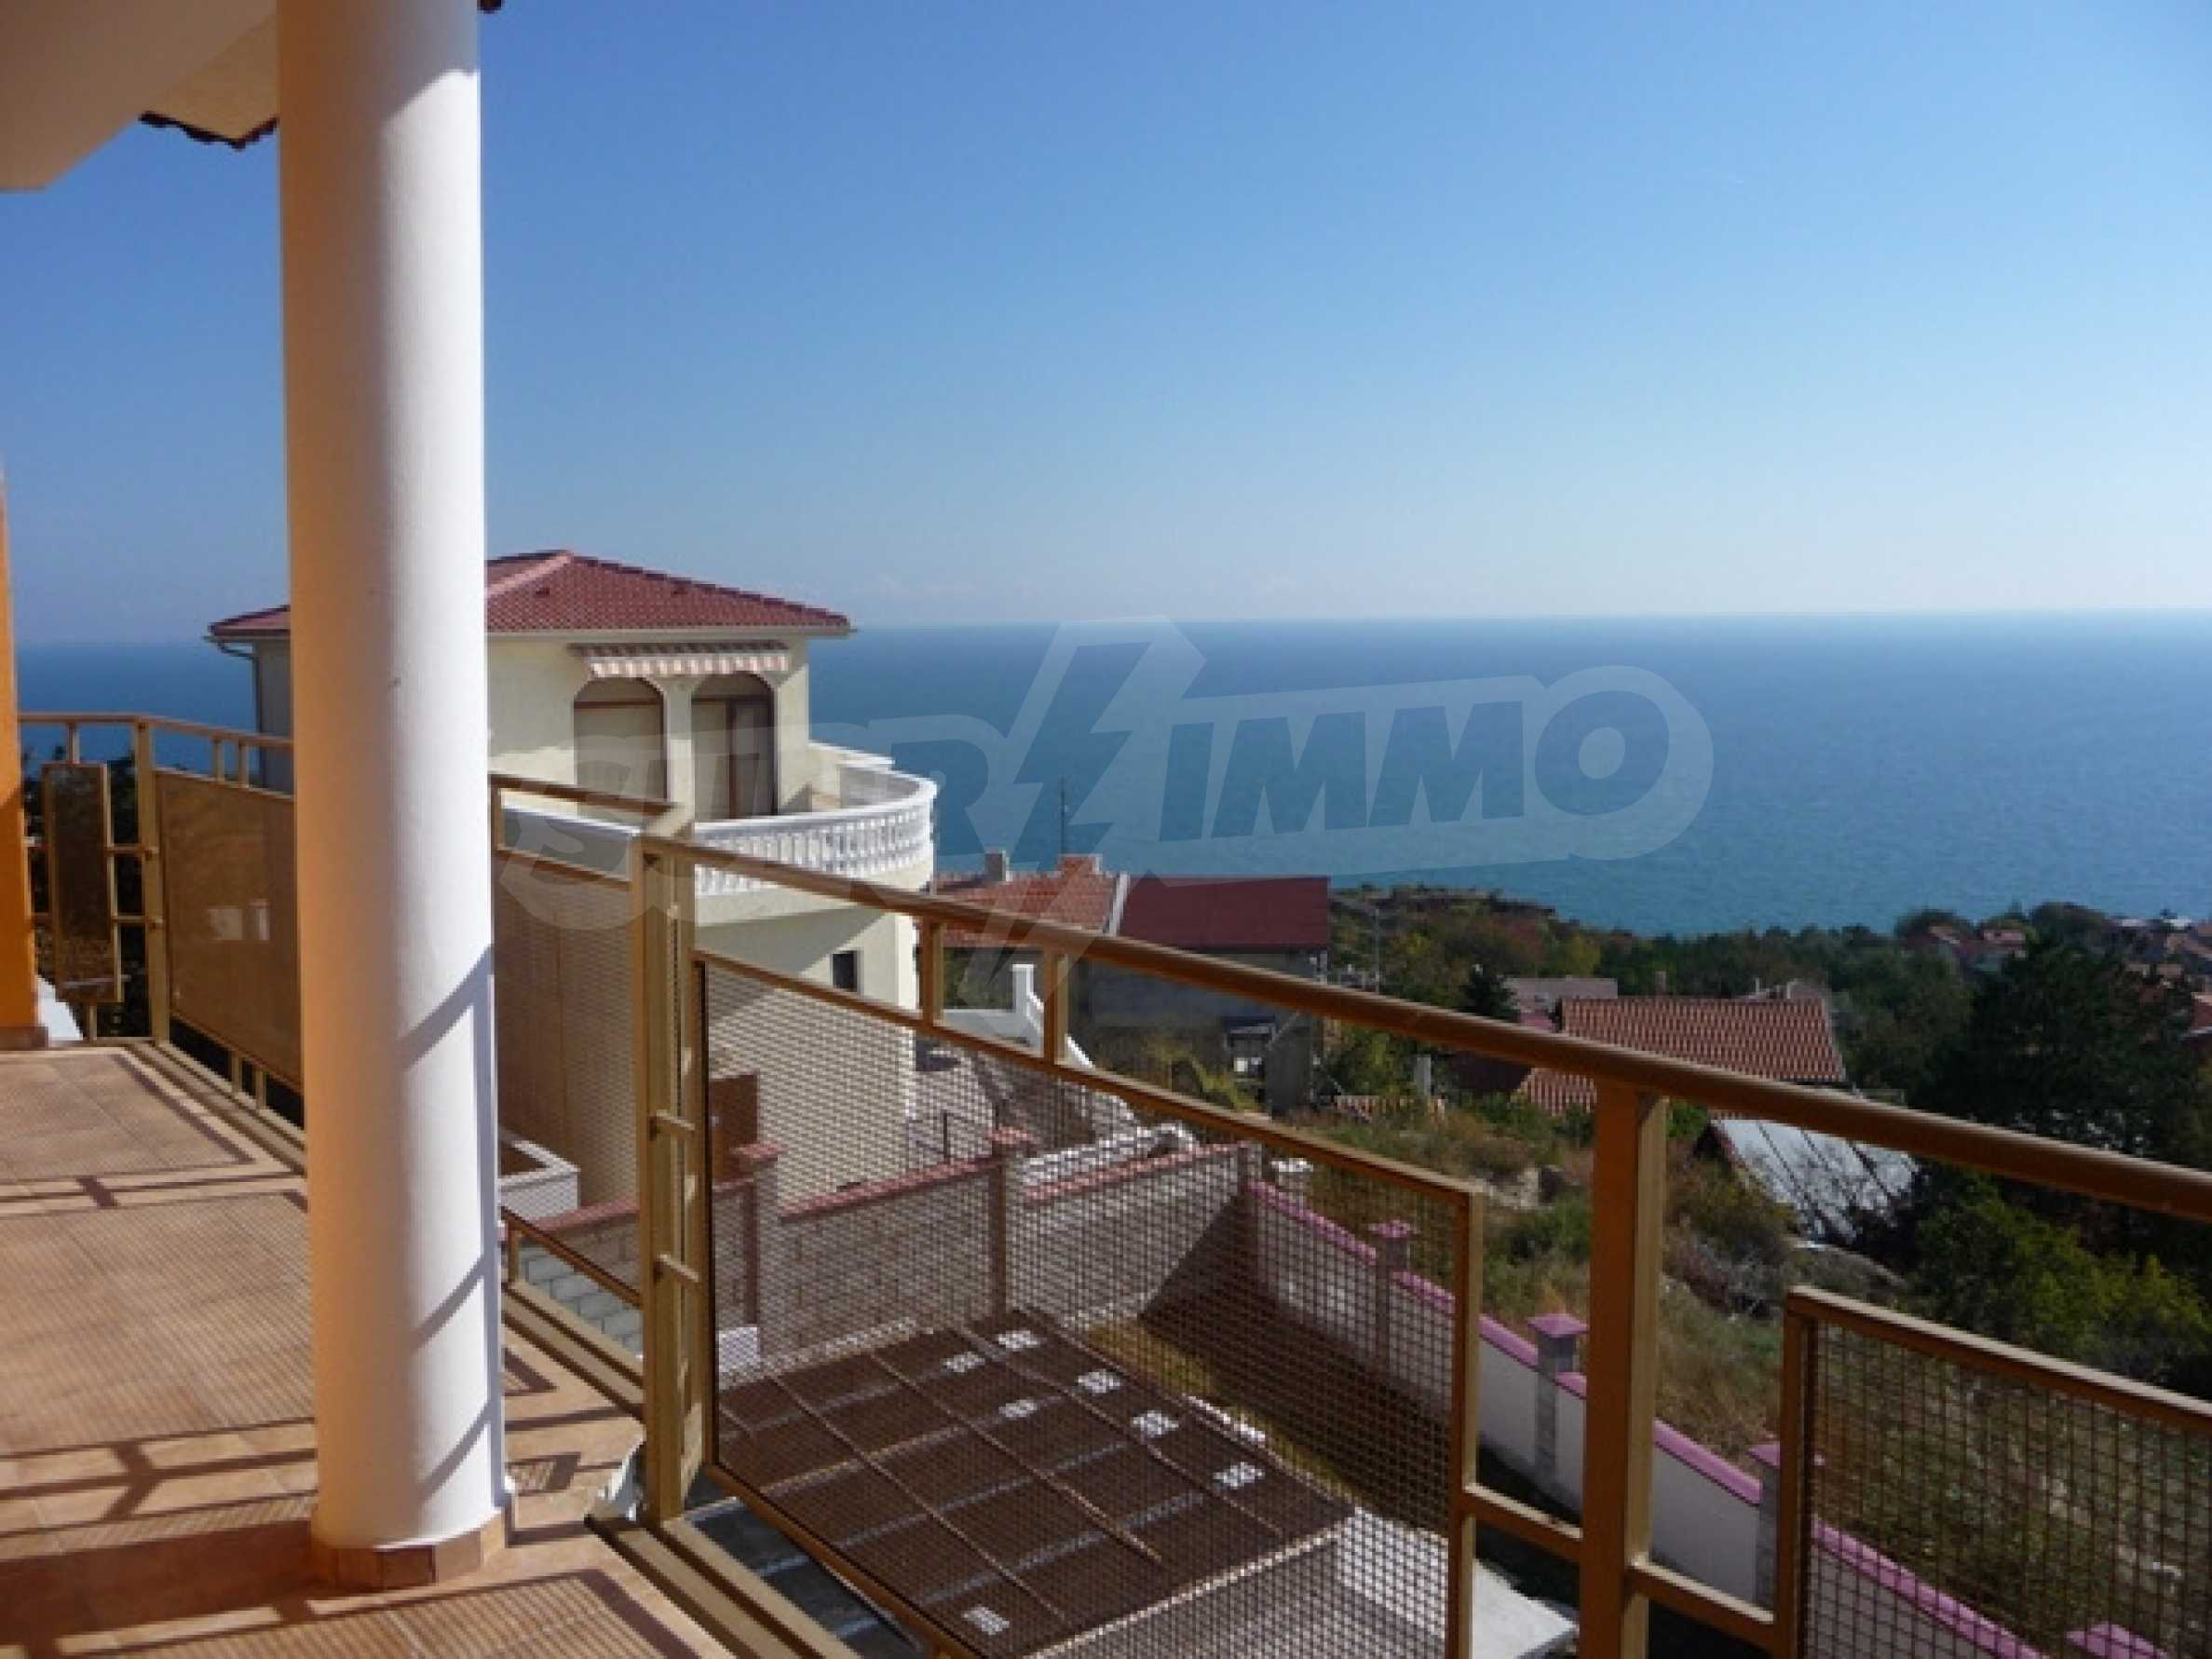 Four storey villa for sale situated in Golden Fish villa zone 22